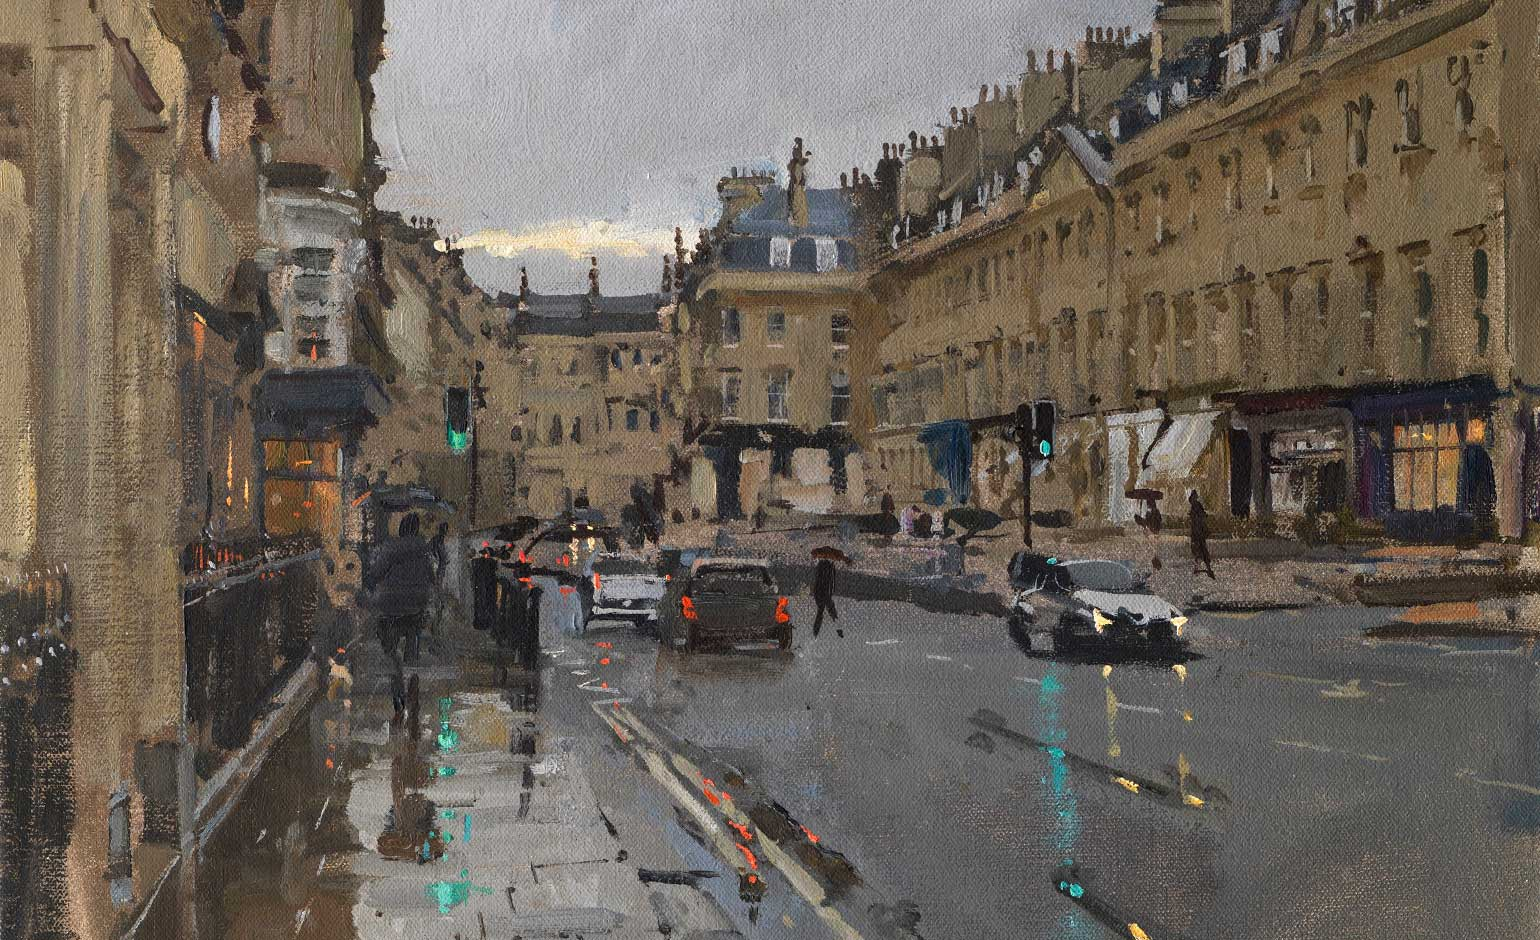 More than 100 paintings and drawings by 'Pete the Street' to go on show | Bath Echo